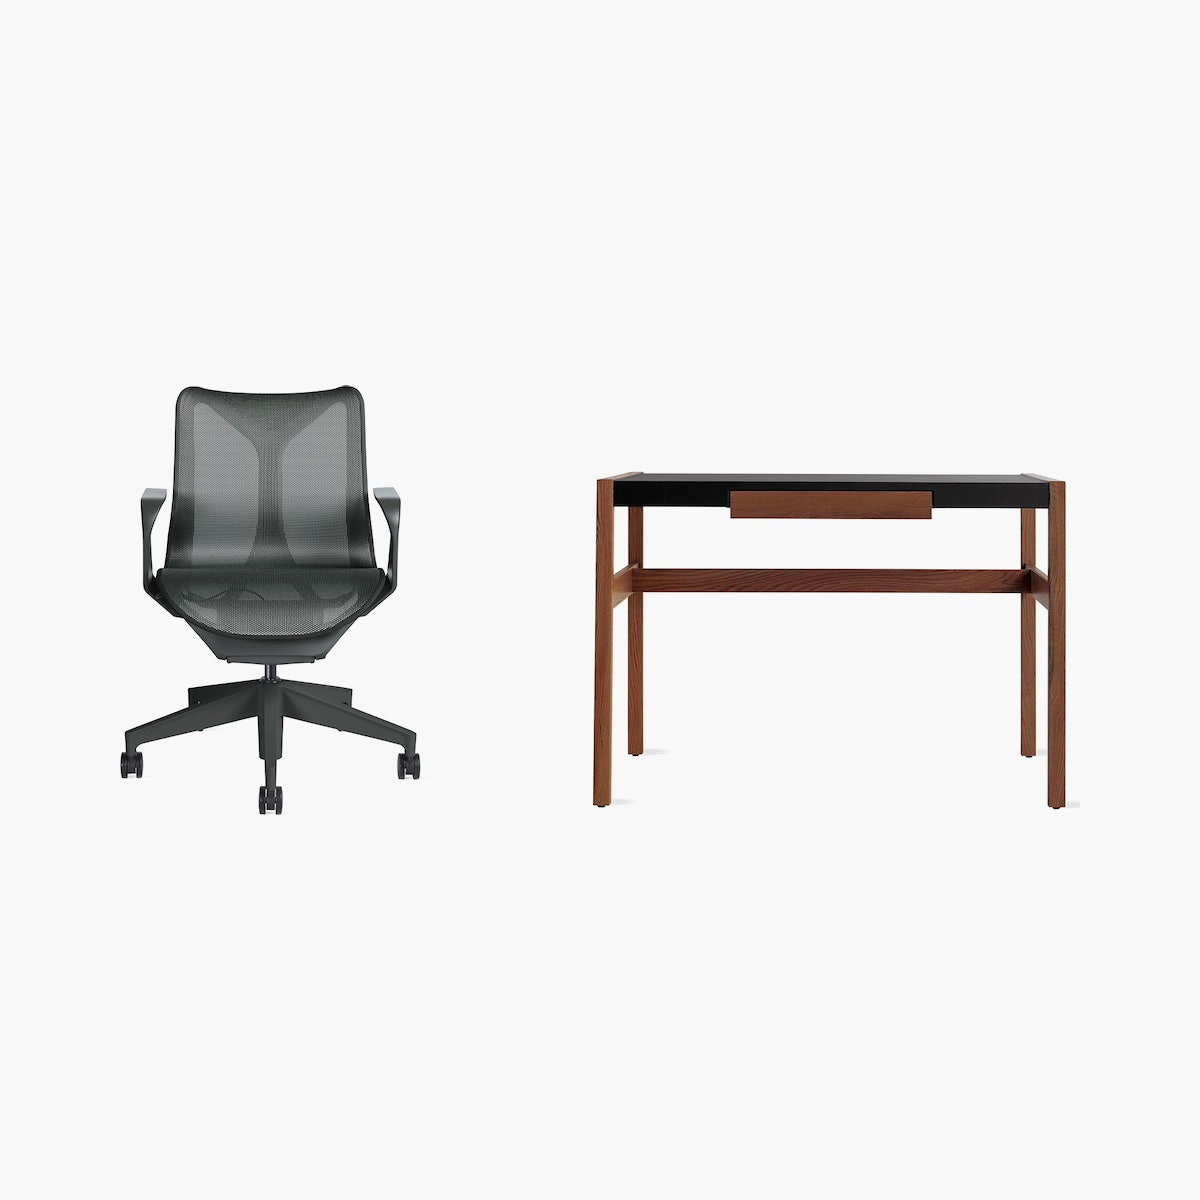 Cosm Chair / Risom Desk Office Bundle